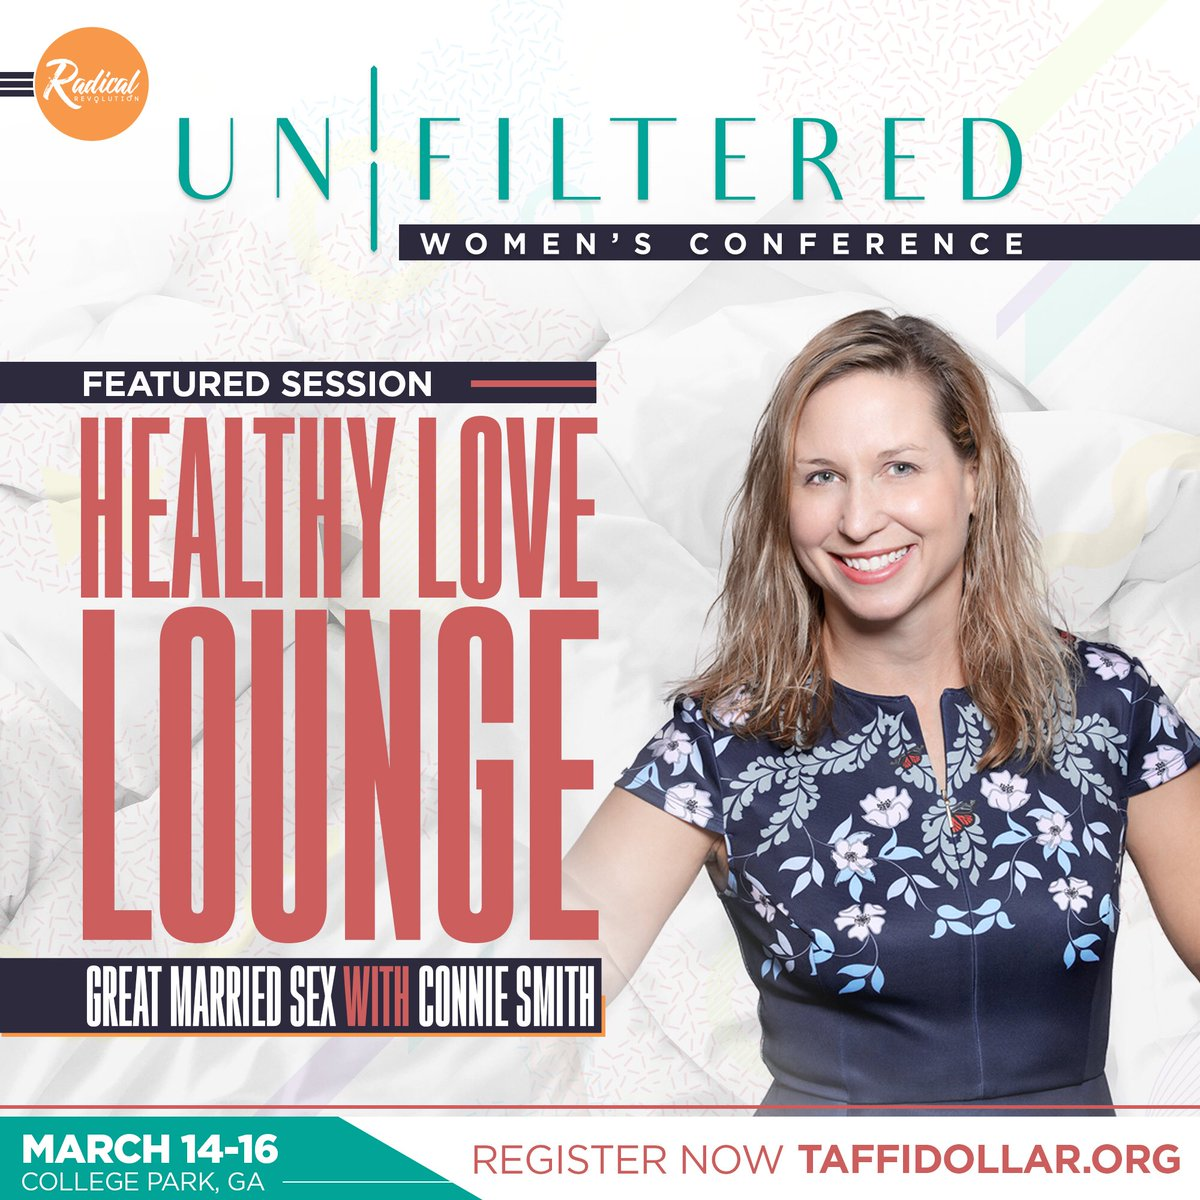 "The 2019 Radical Women's Conference ""Unfiltered"" will feature a breakout session with @connielovesmike on embracing intimacy. Take advantage of $45 tickets and register now by texting Radical2019 to 51555!  #RadicalWomen #WomensConference #Unfiltered  #UnfilteredConference"